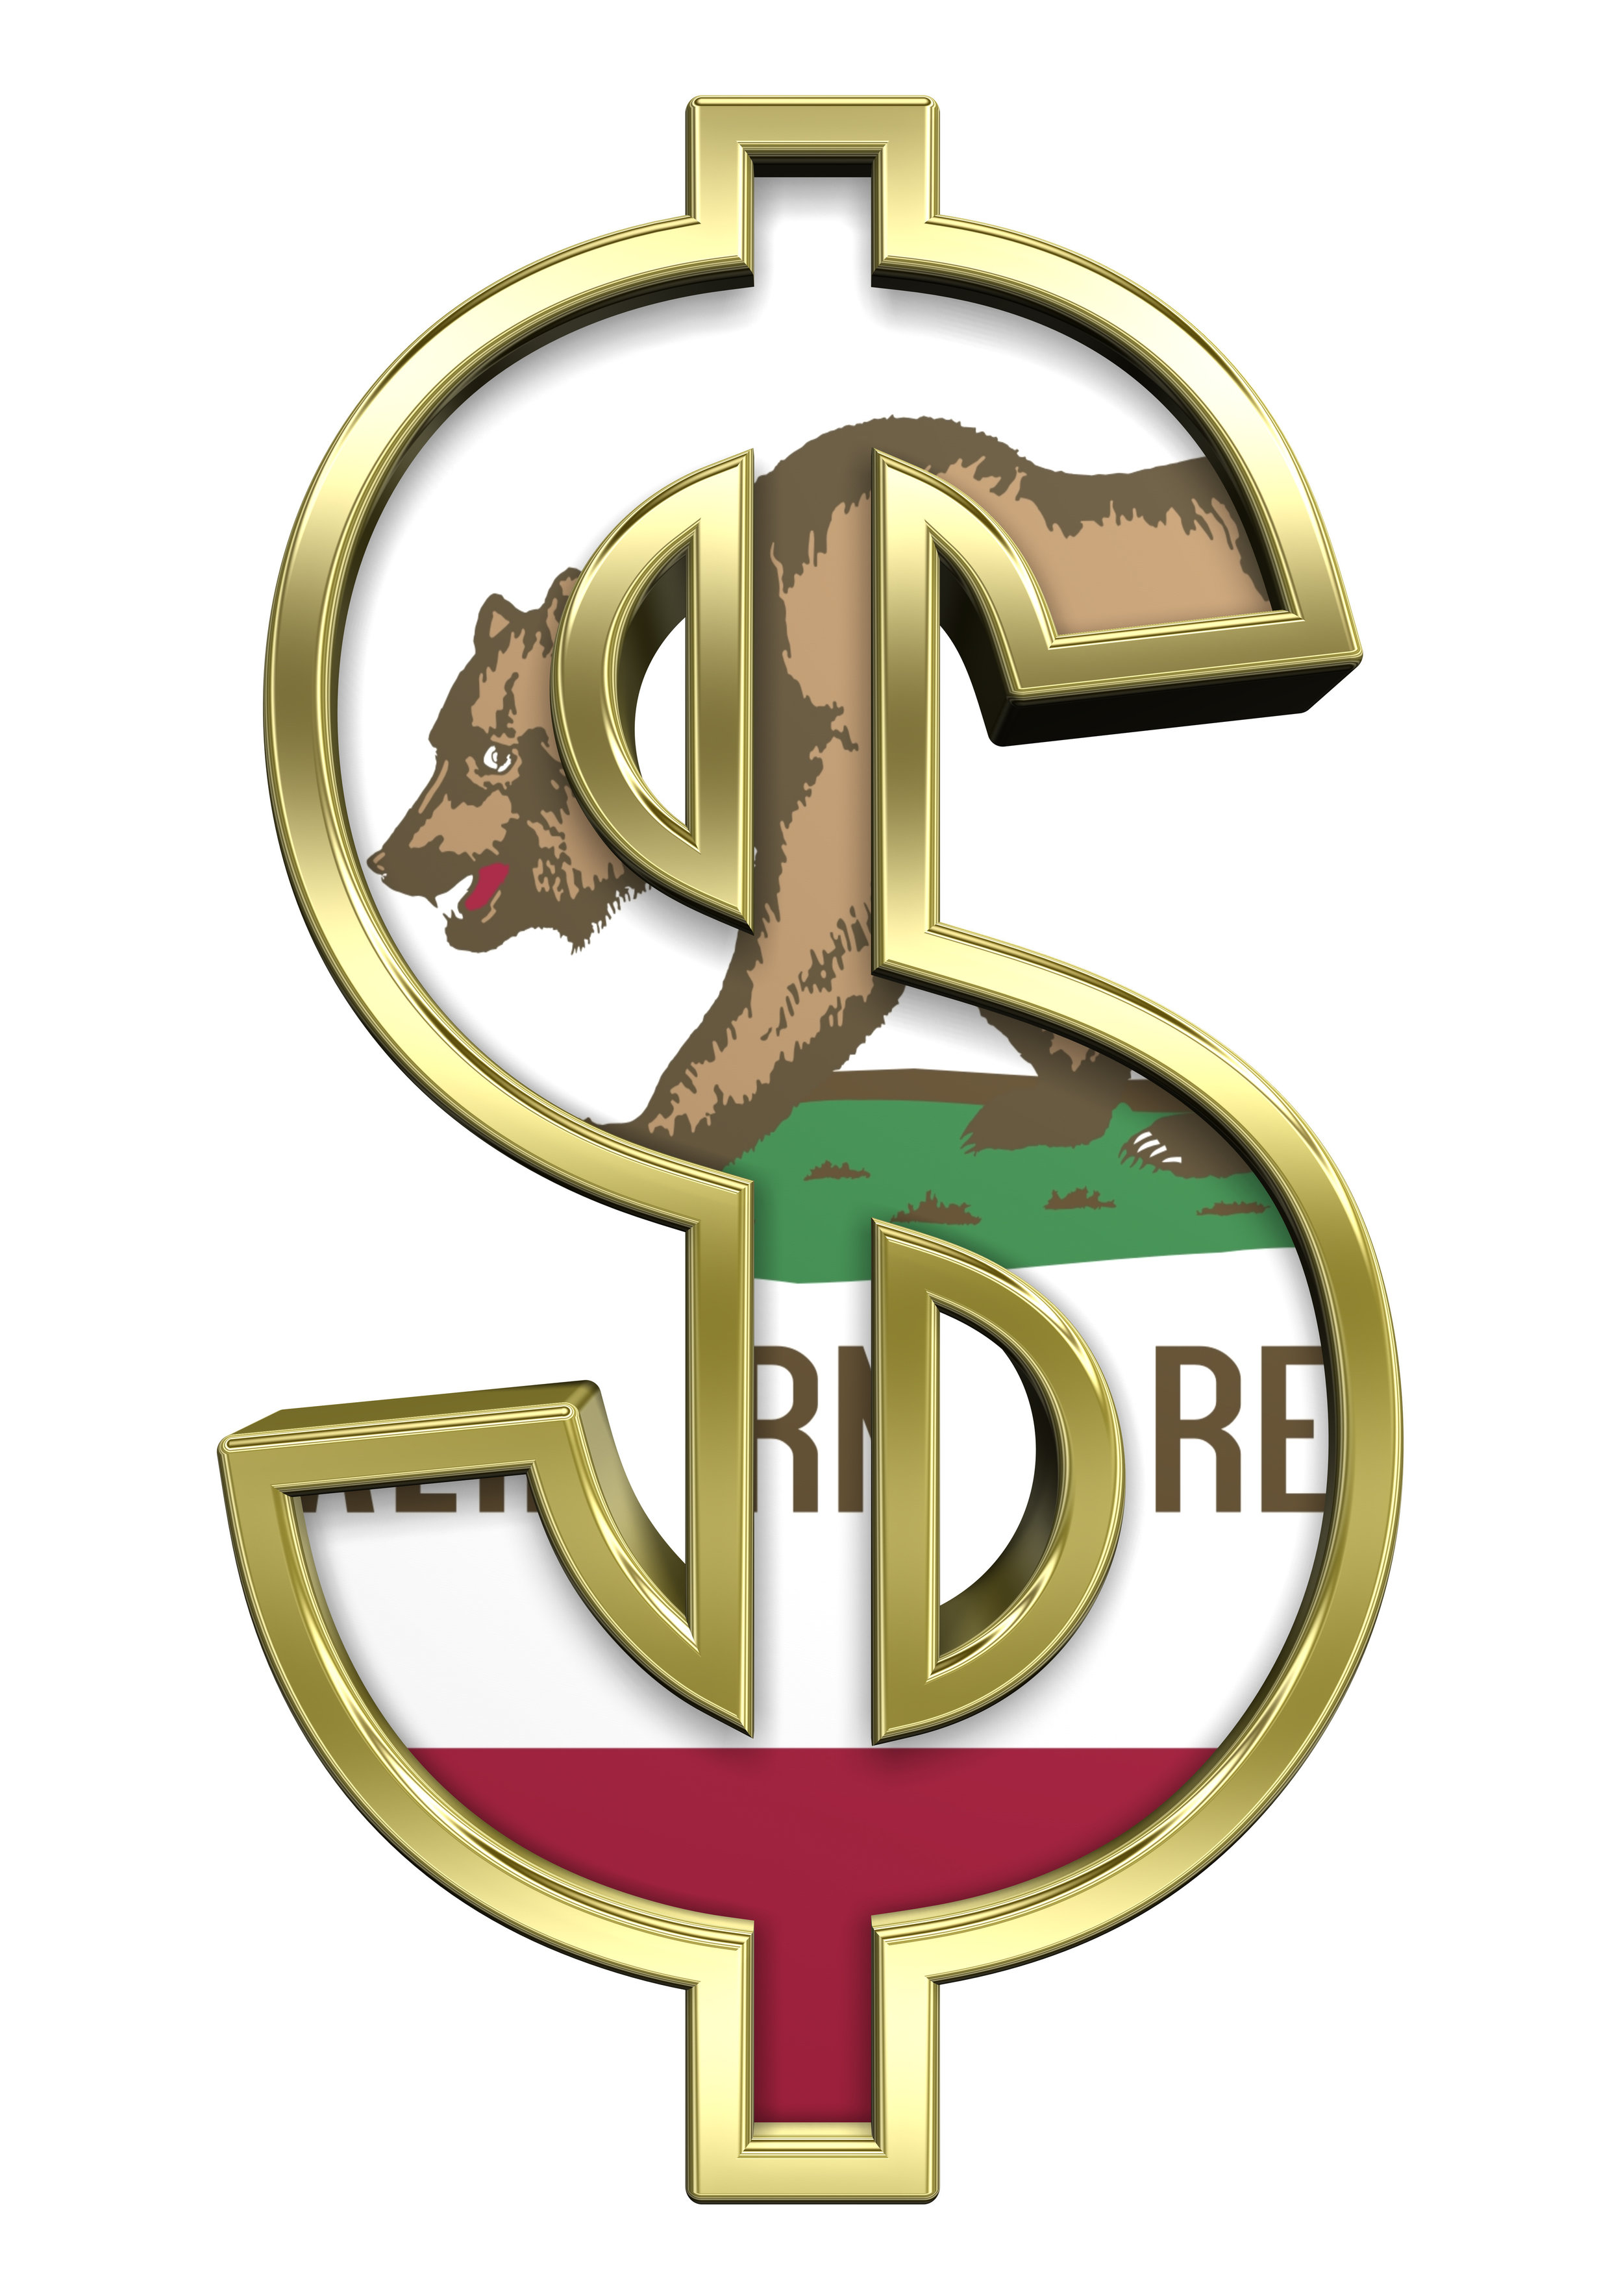 dollar-sign-with-california-flag-isolated-on-white_fyFoEbjd.jpg